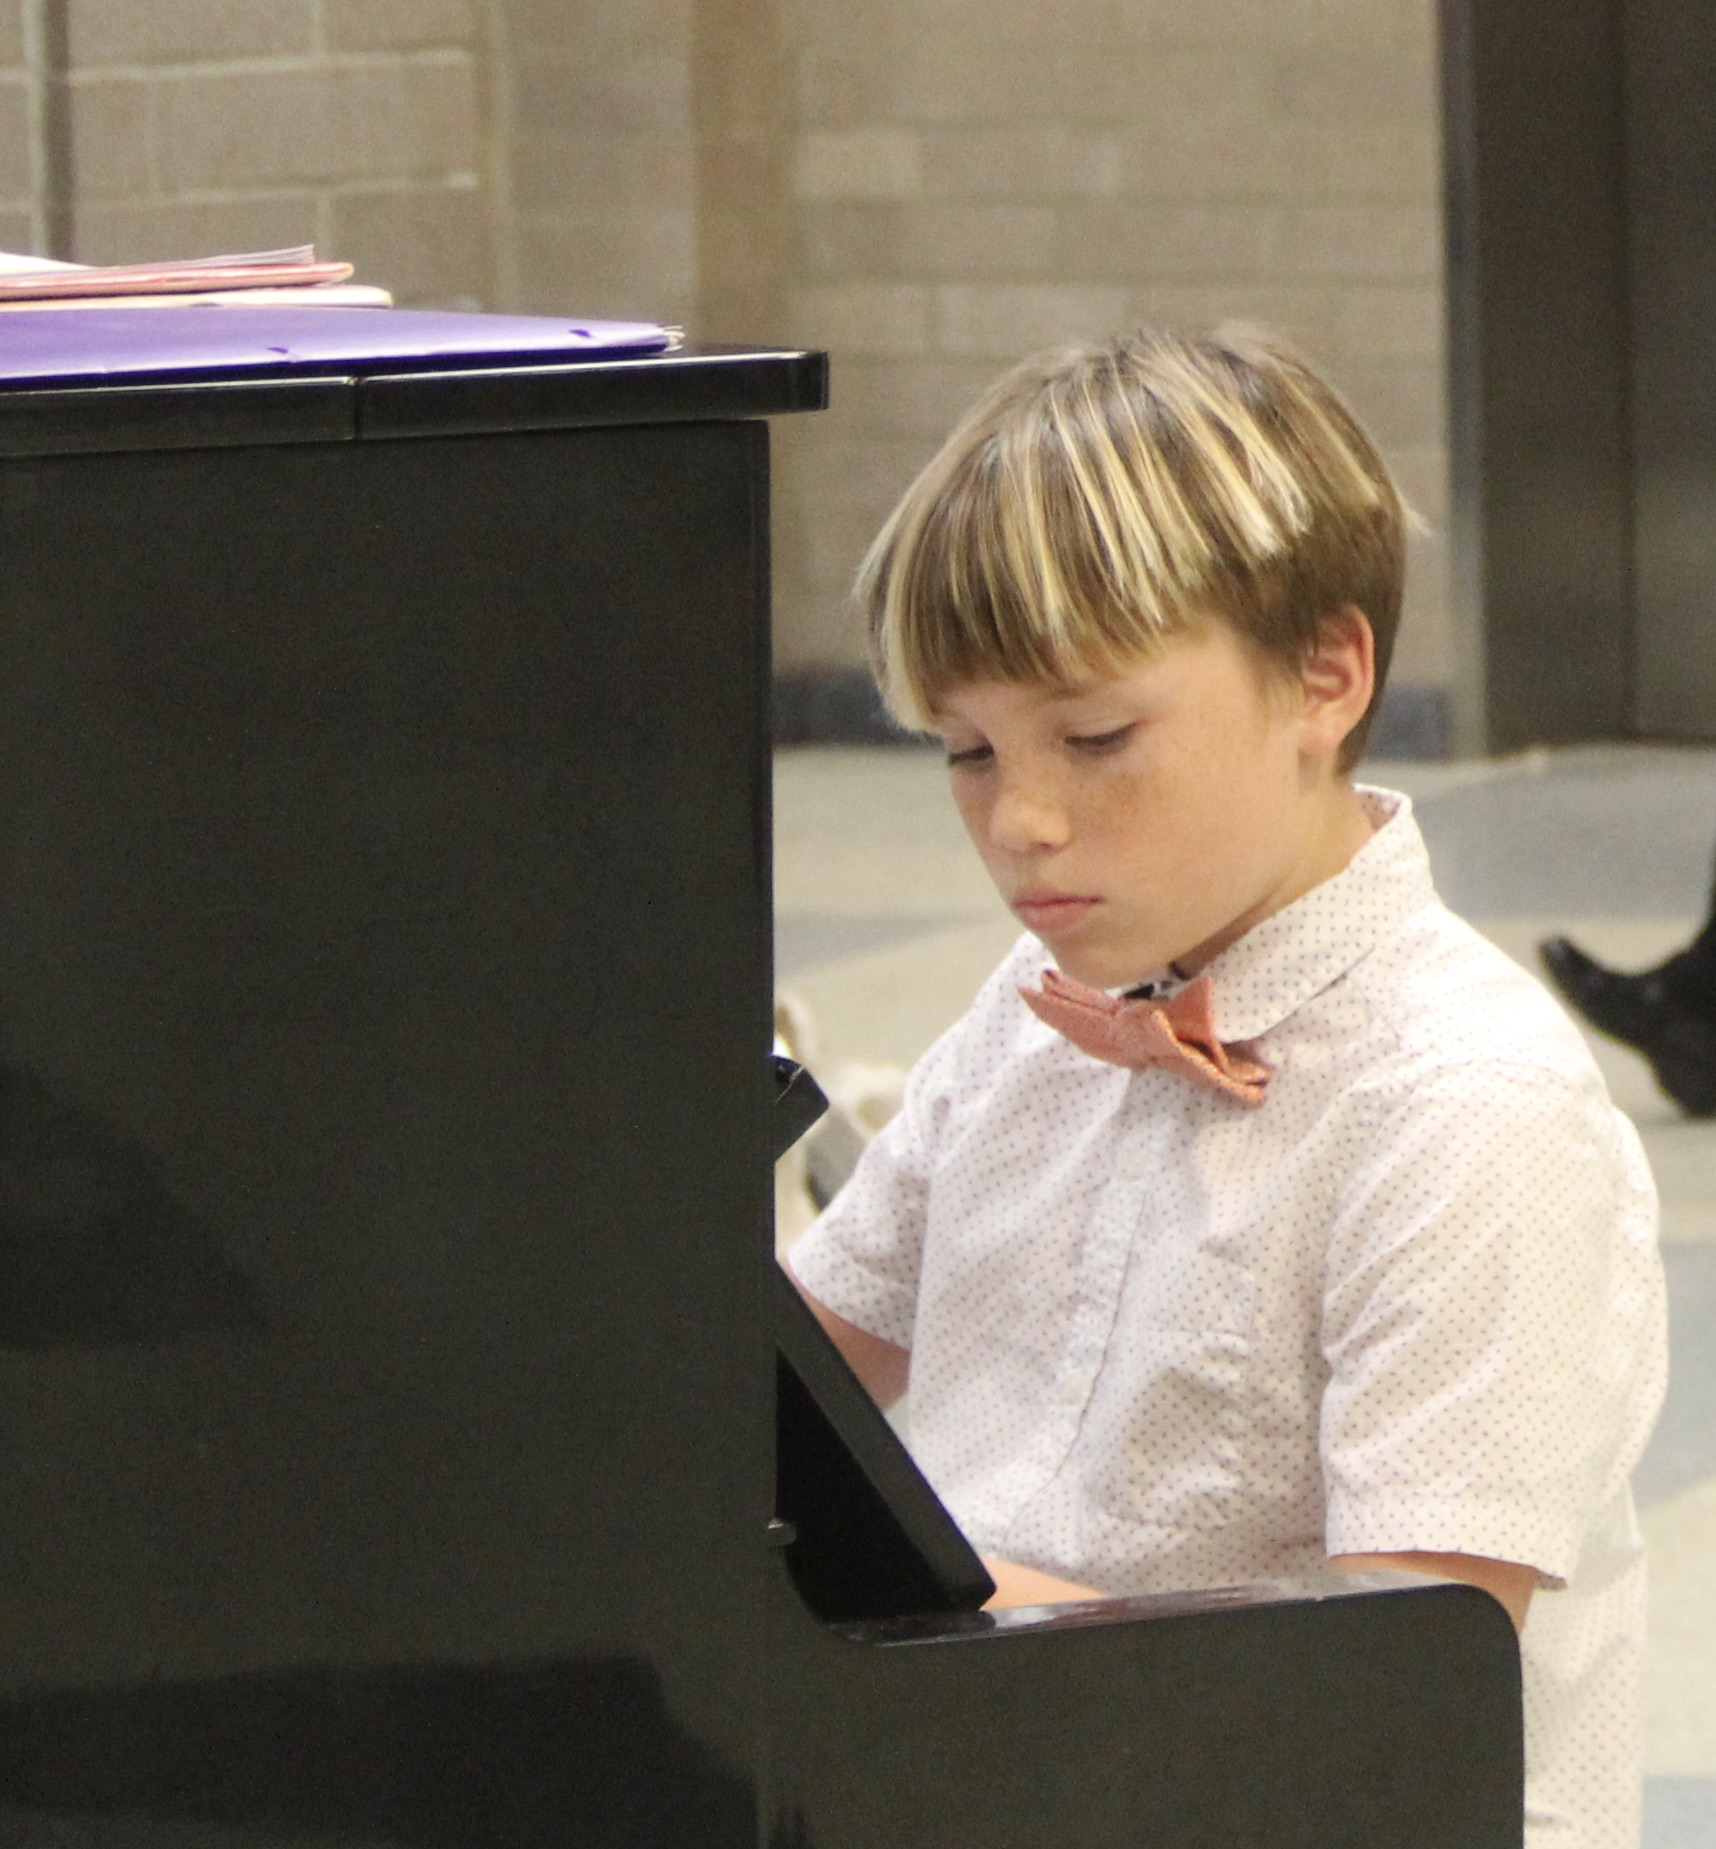 Student Concerts in 2020. Young boy plays jazz piano in ragtime concert.